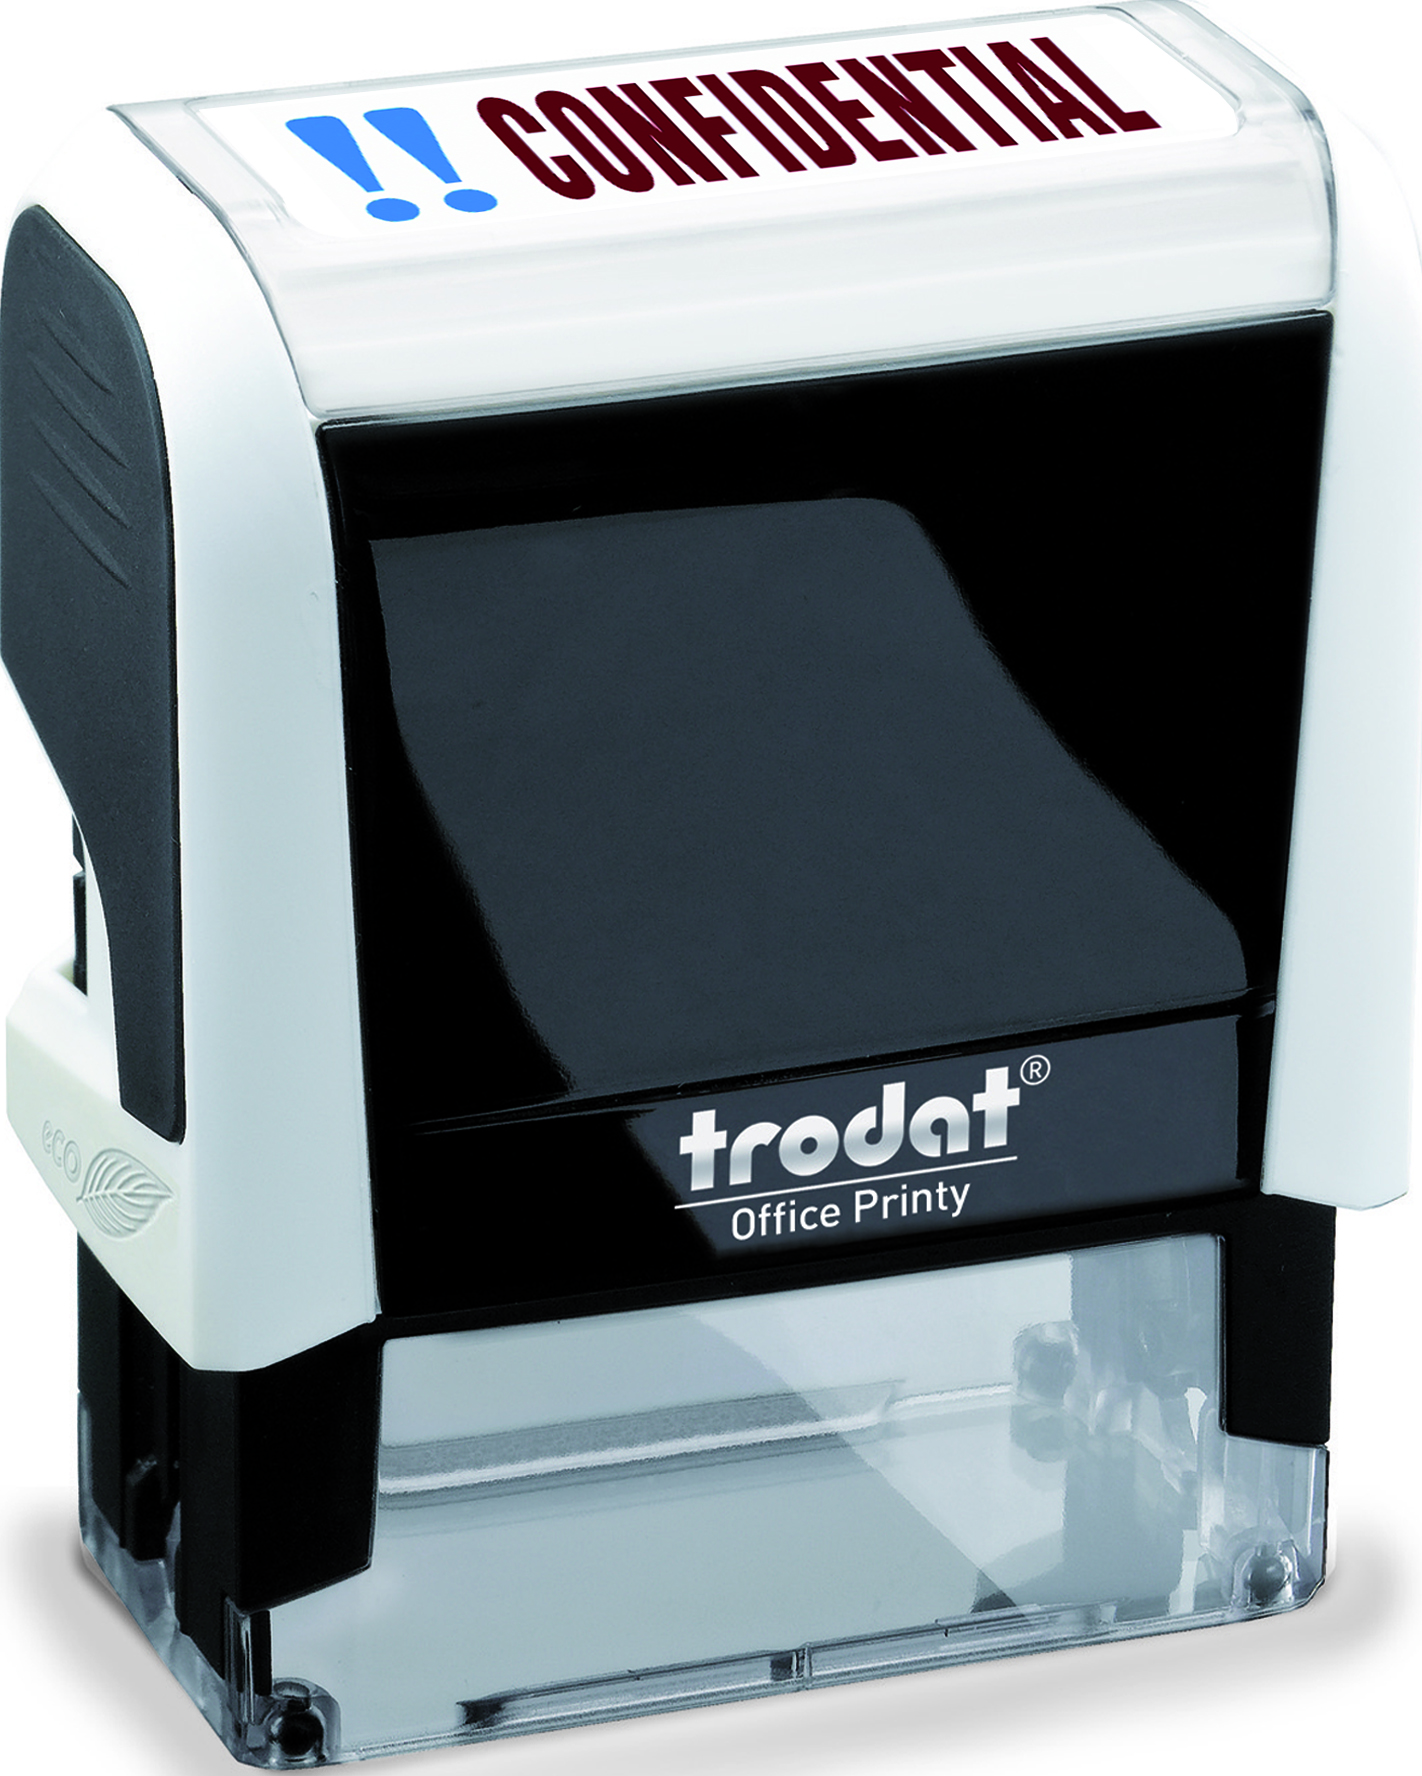 Trodat Office Printy 4912 White CONFIDENTIAL